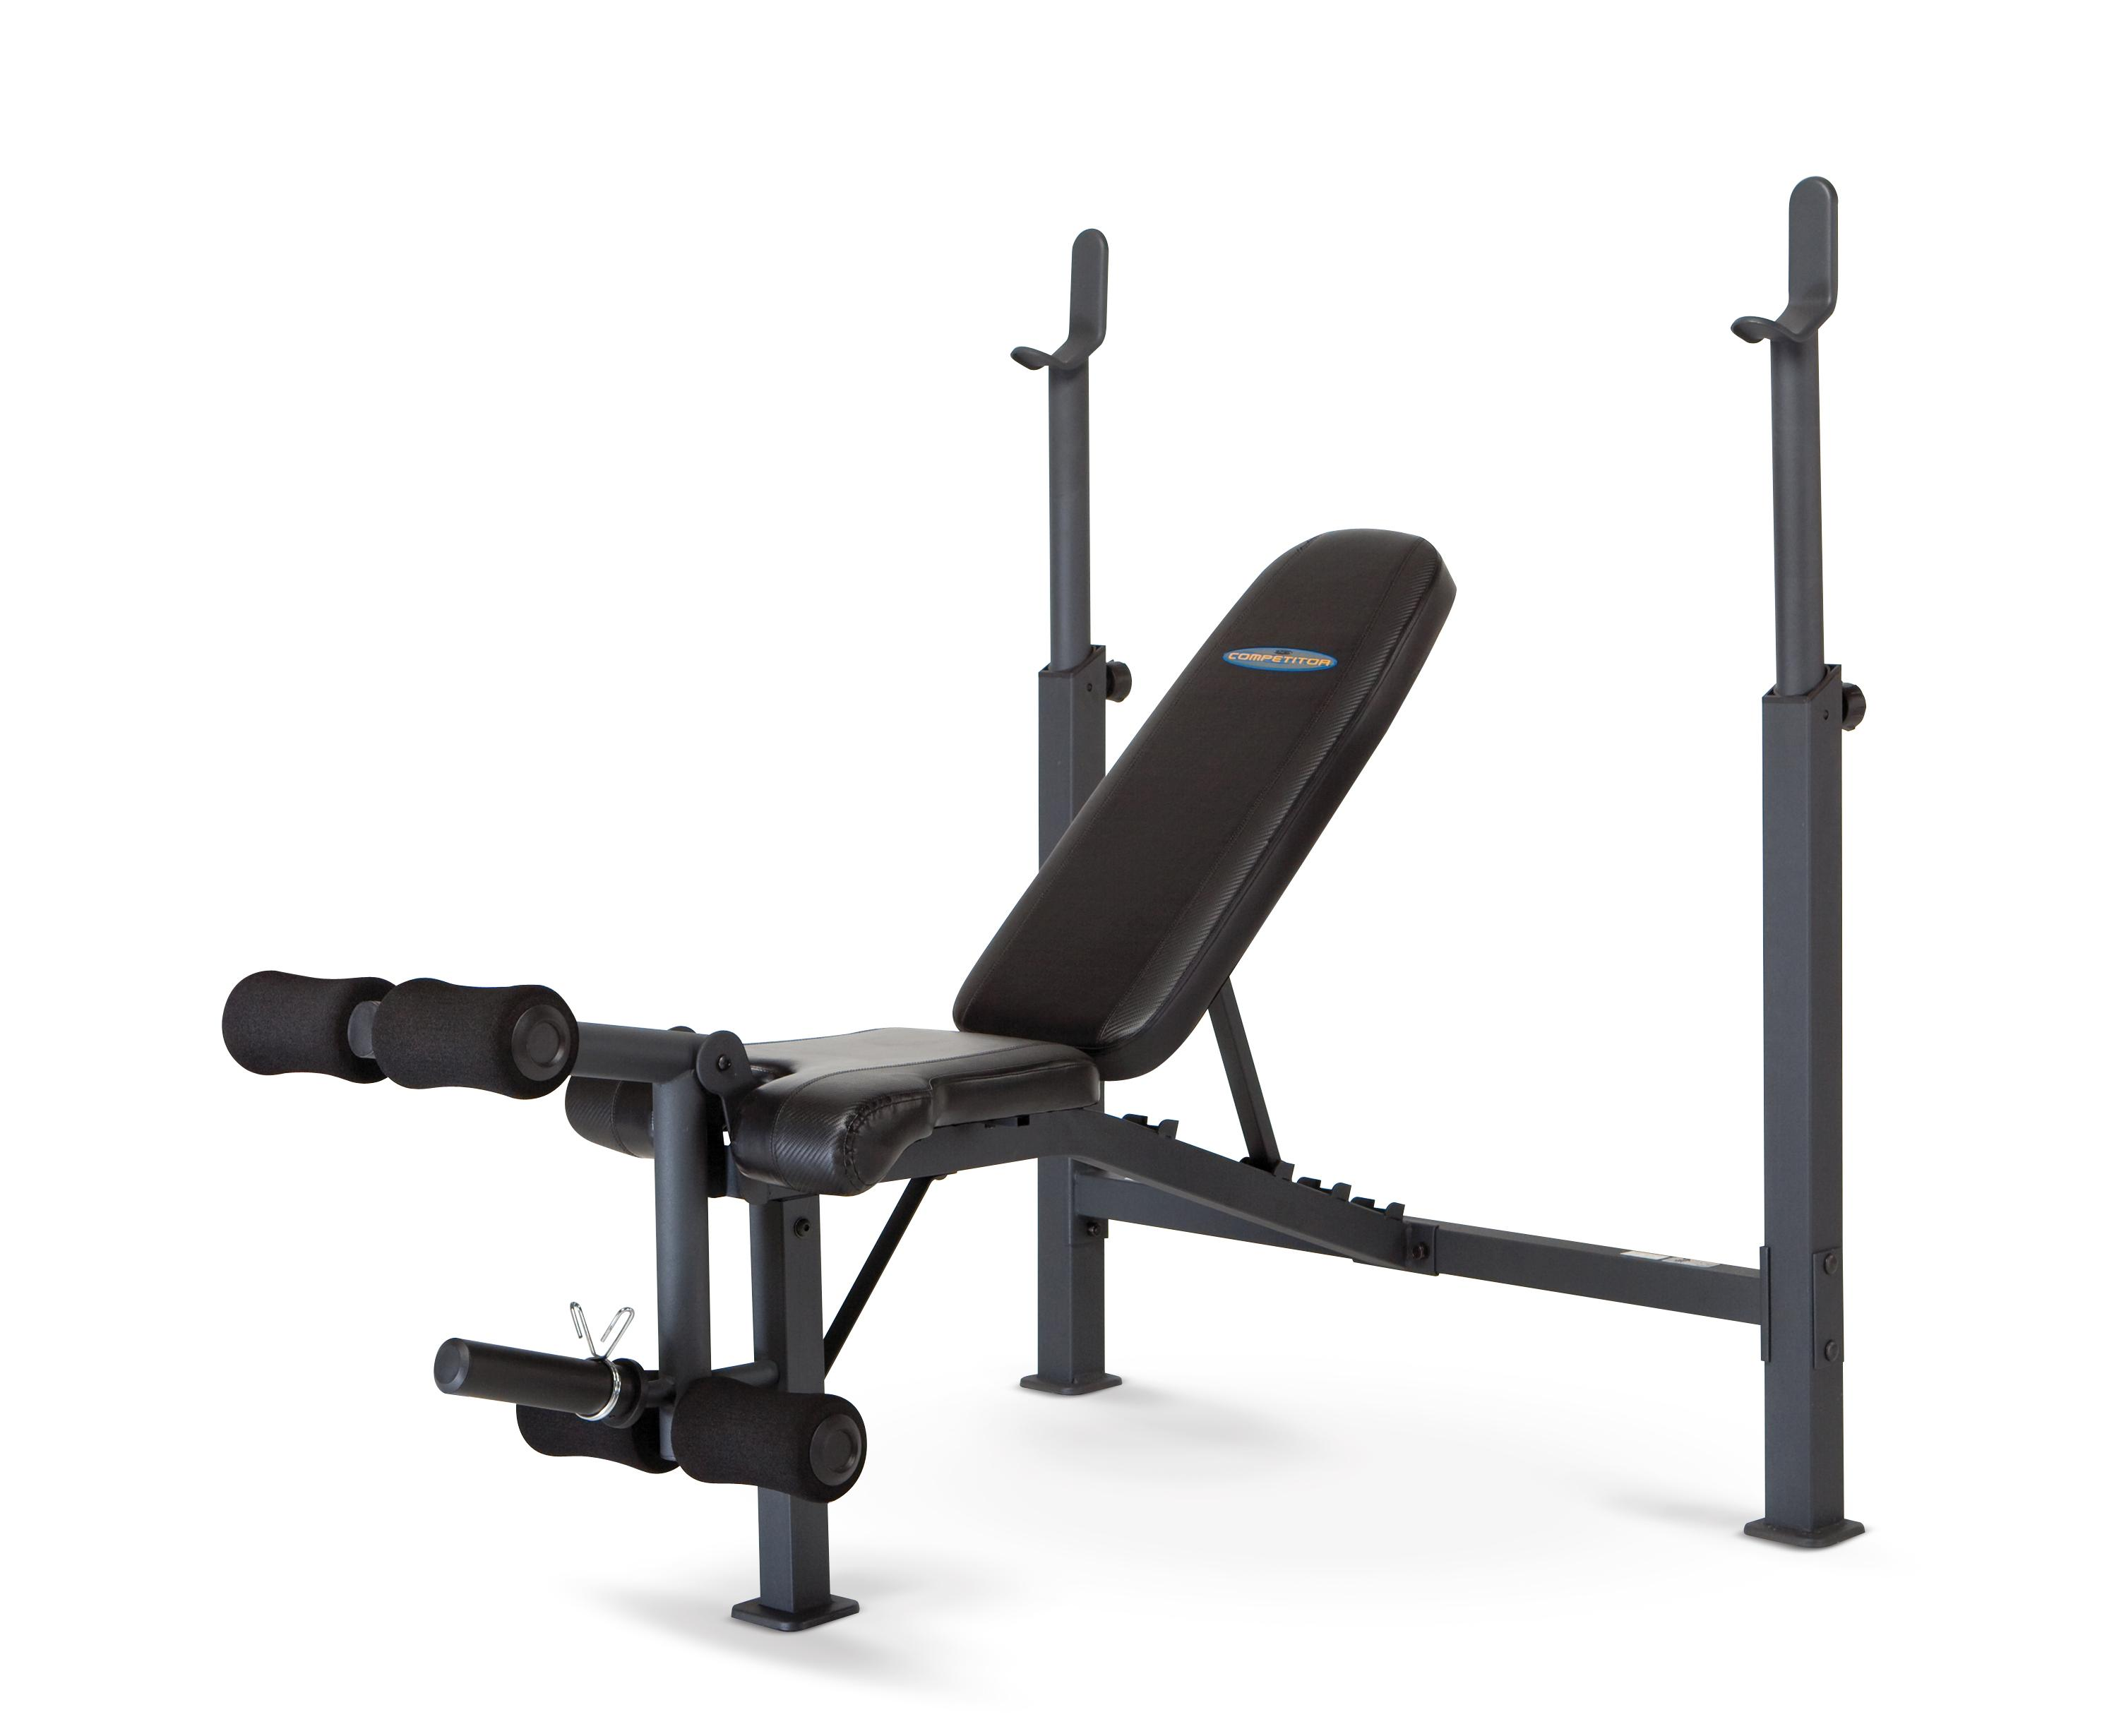 Amazoncom Marcy Competitor Adjustable Olympic Weight Bench with